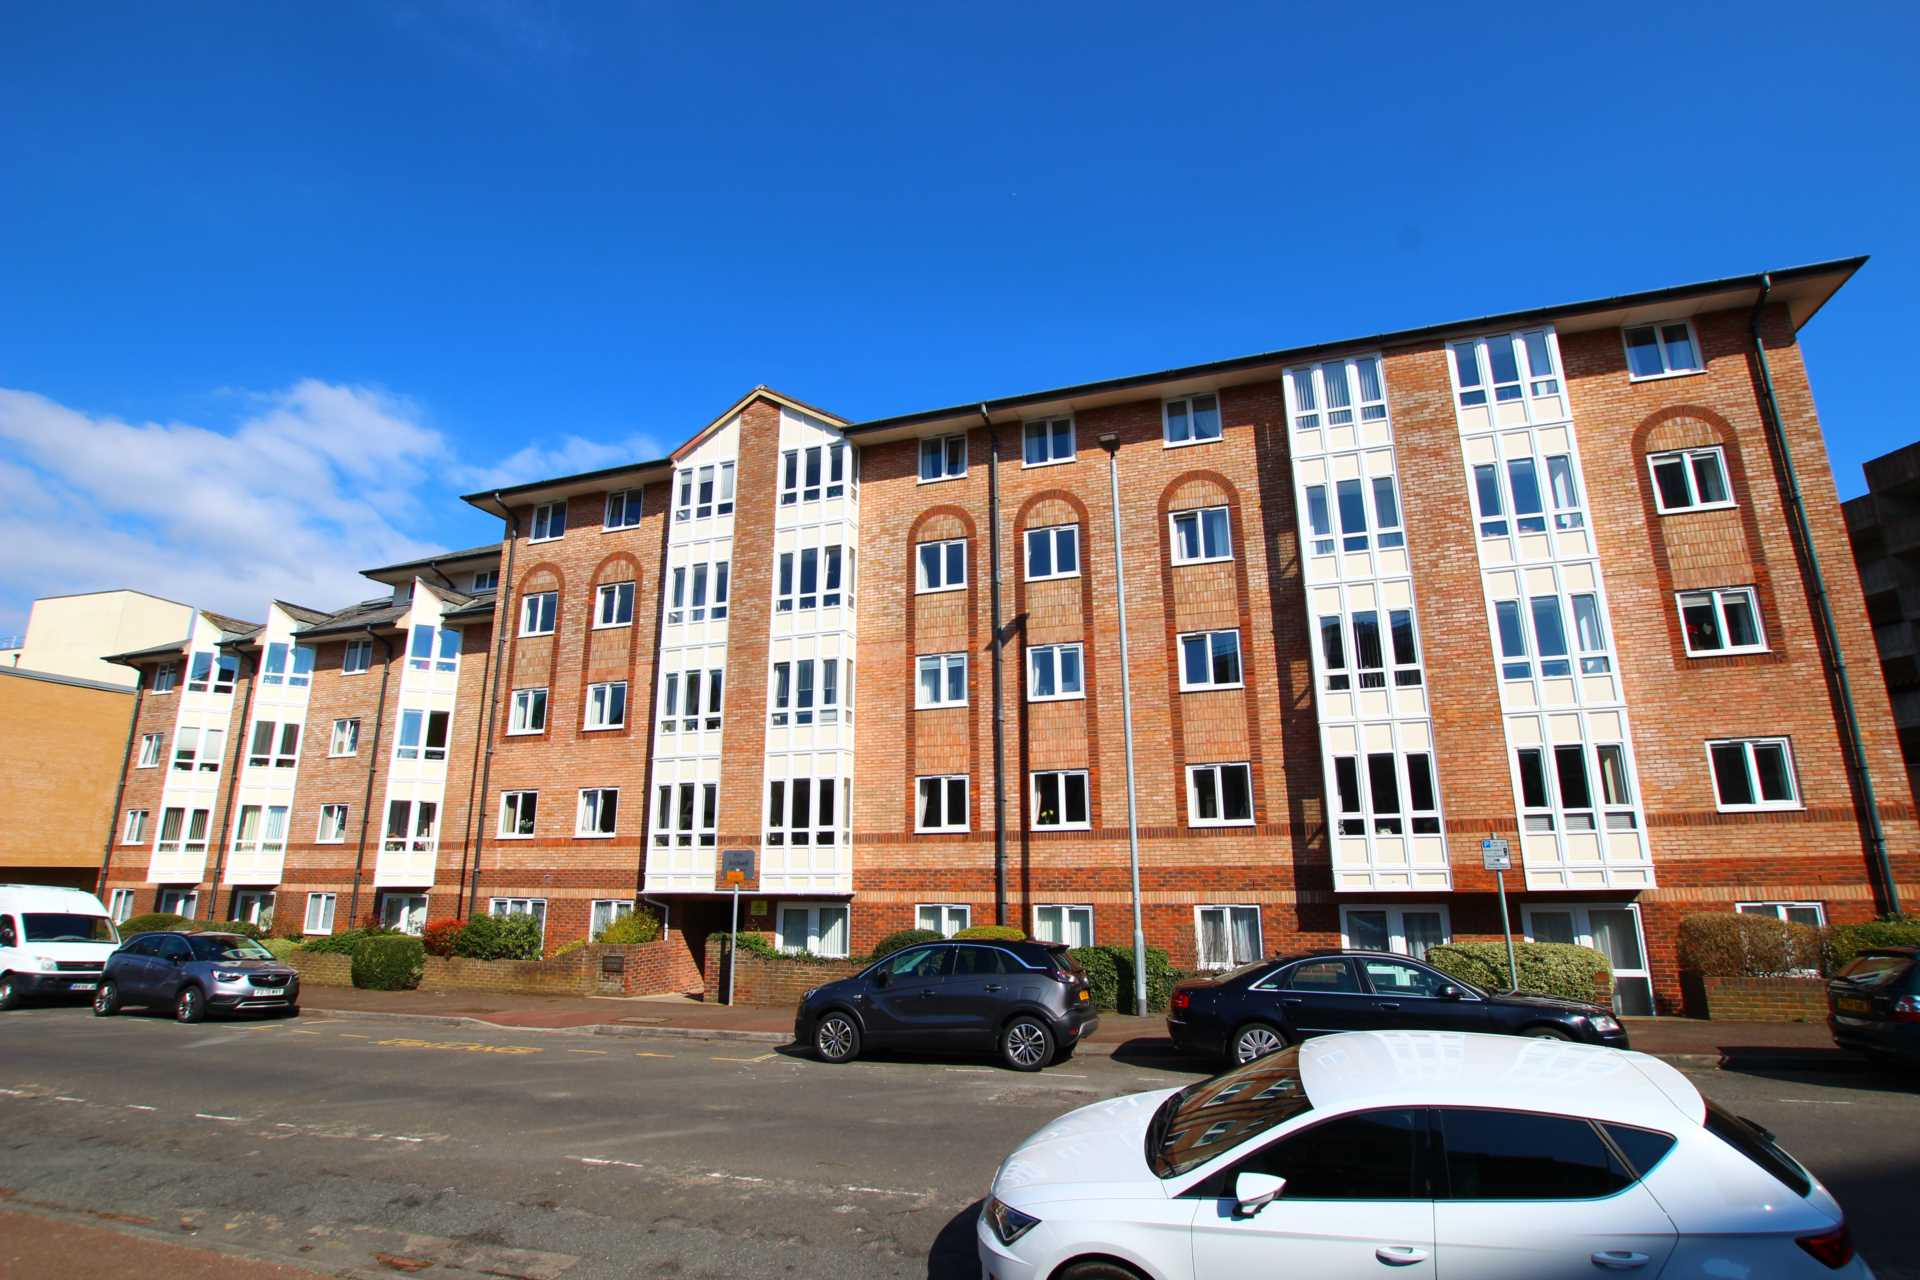 Trinity Place, Eastbourne, BN21 3DB, Image 1